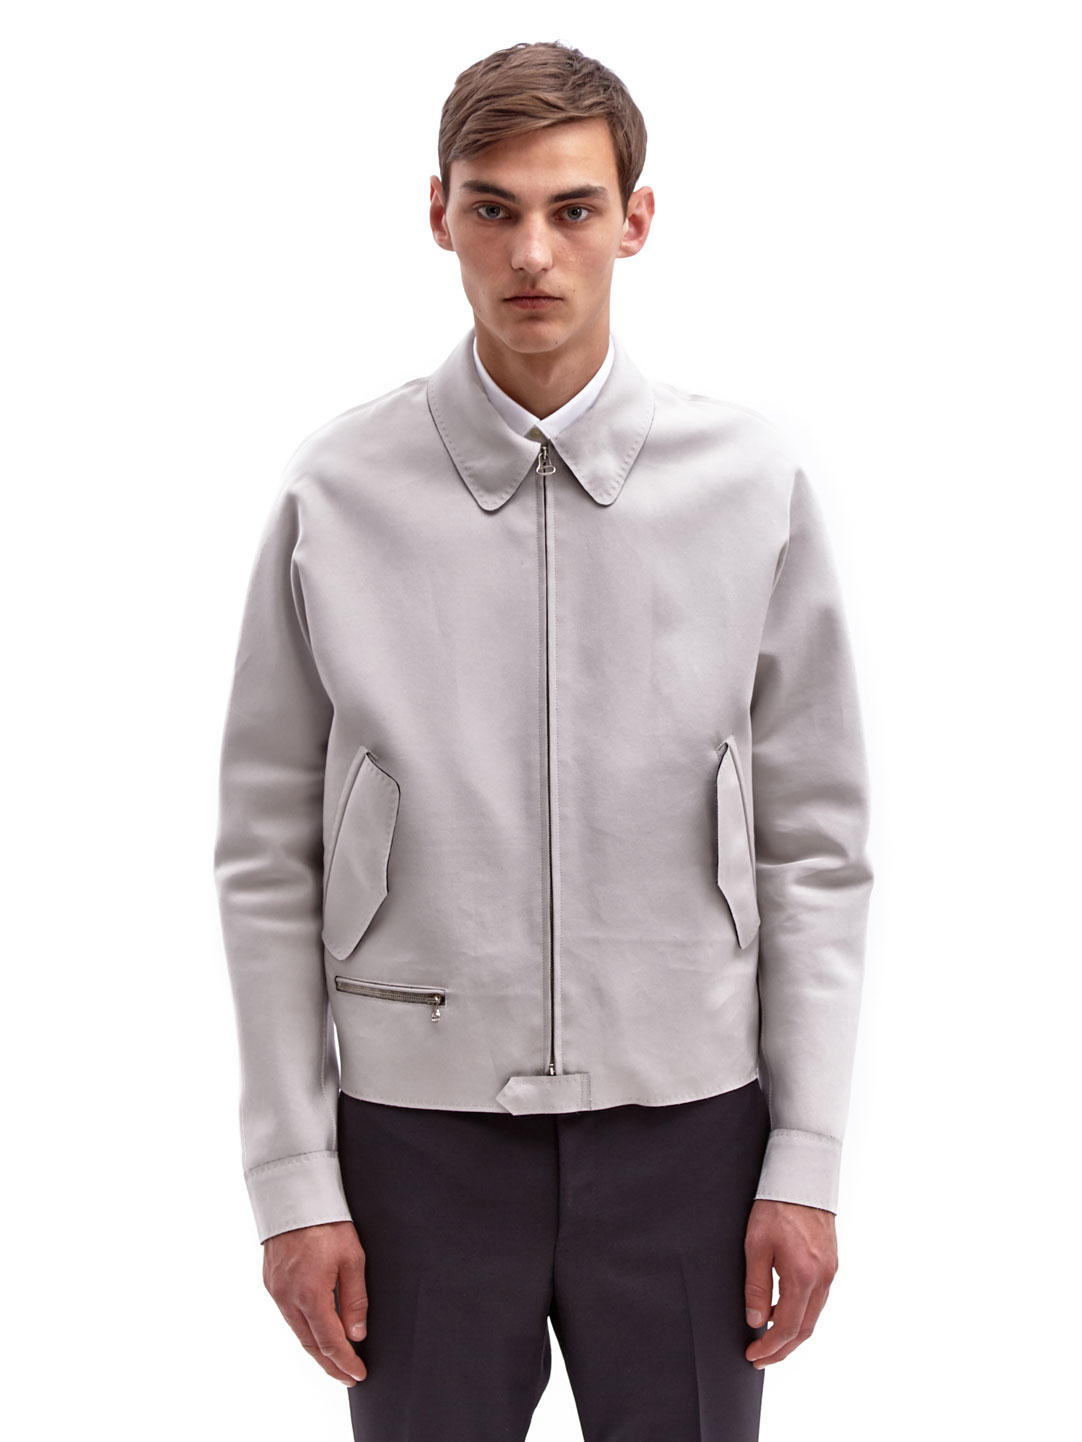 Stylish Men's Bomber Jackets The choice of men's jackets means that you can find a jacket for every occasion. As well as classic blouson jackets, you'll also find military-style and safari-style jackets, zip-up hooded parkas, leather blouson jackets weatherproof sailing jacket.